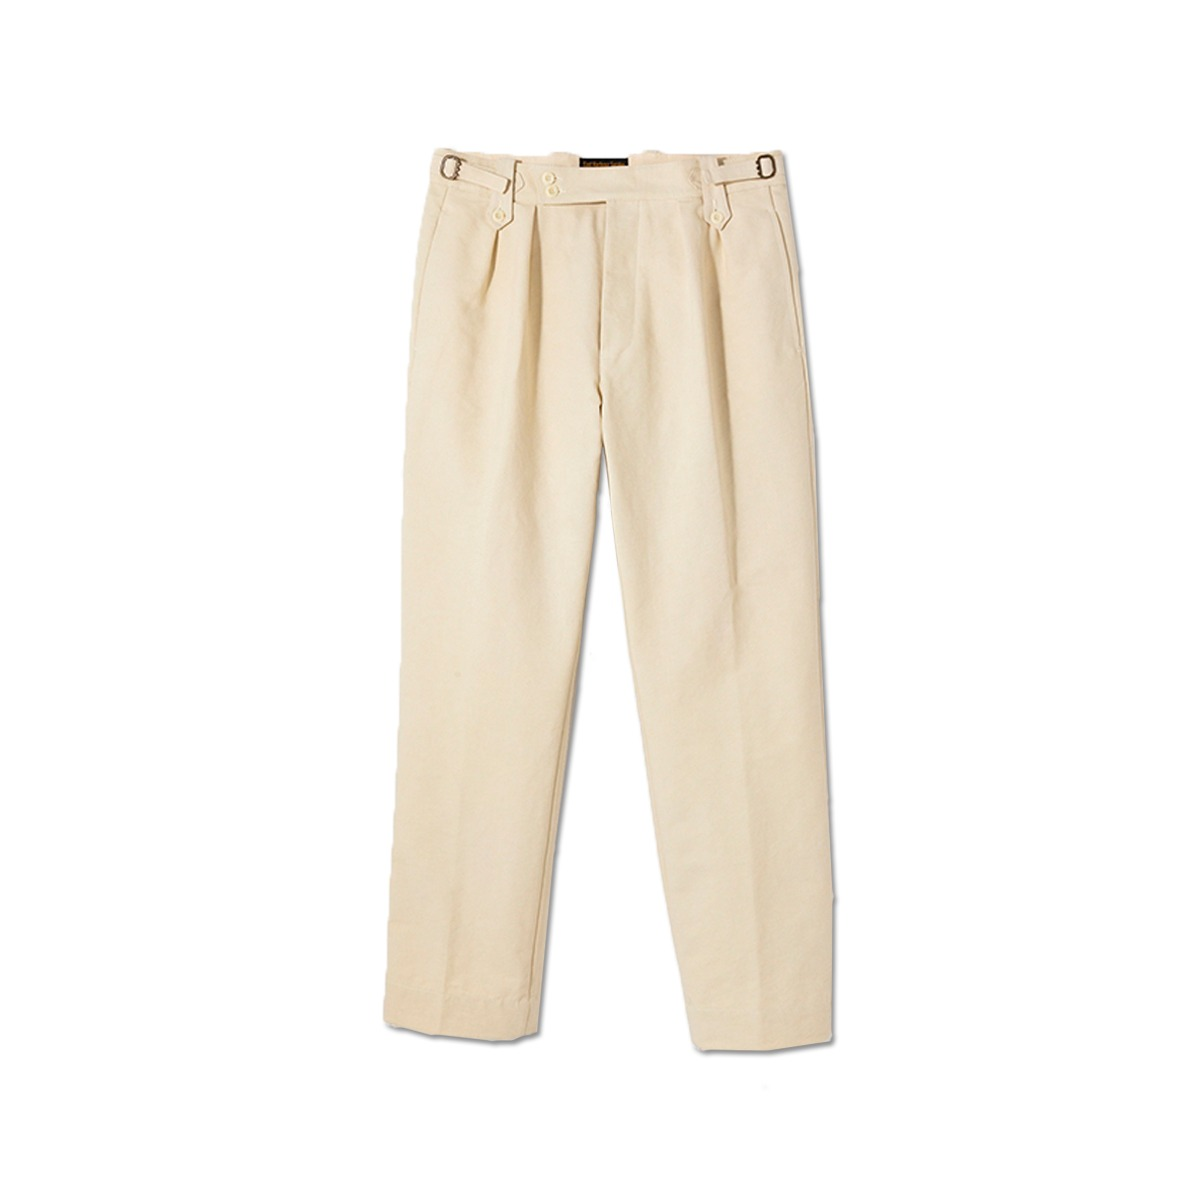 [EAST HARBOUR SURPLUS] GURKA 2 PENCE PANTS 'OFF WHITE'